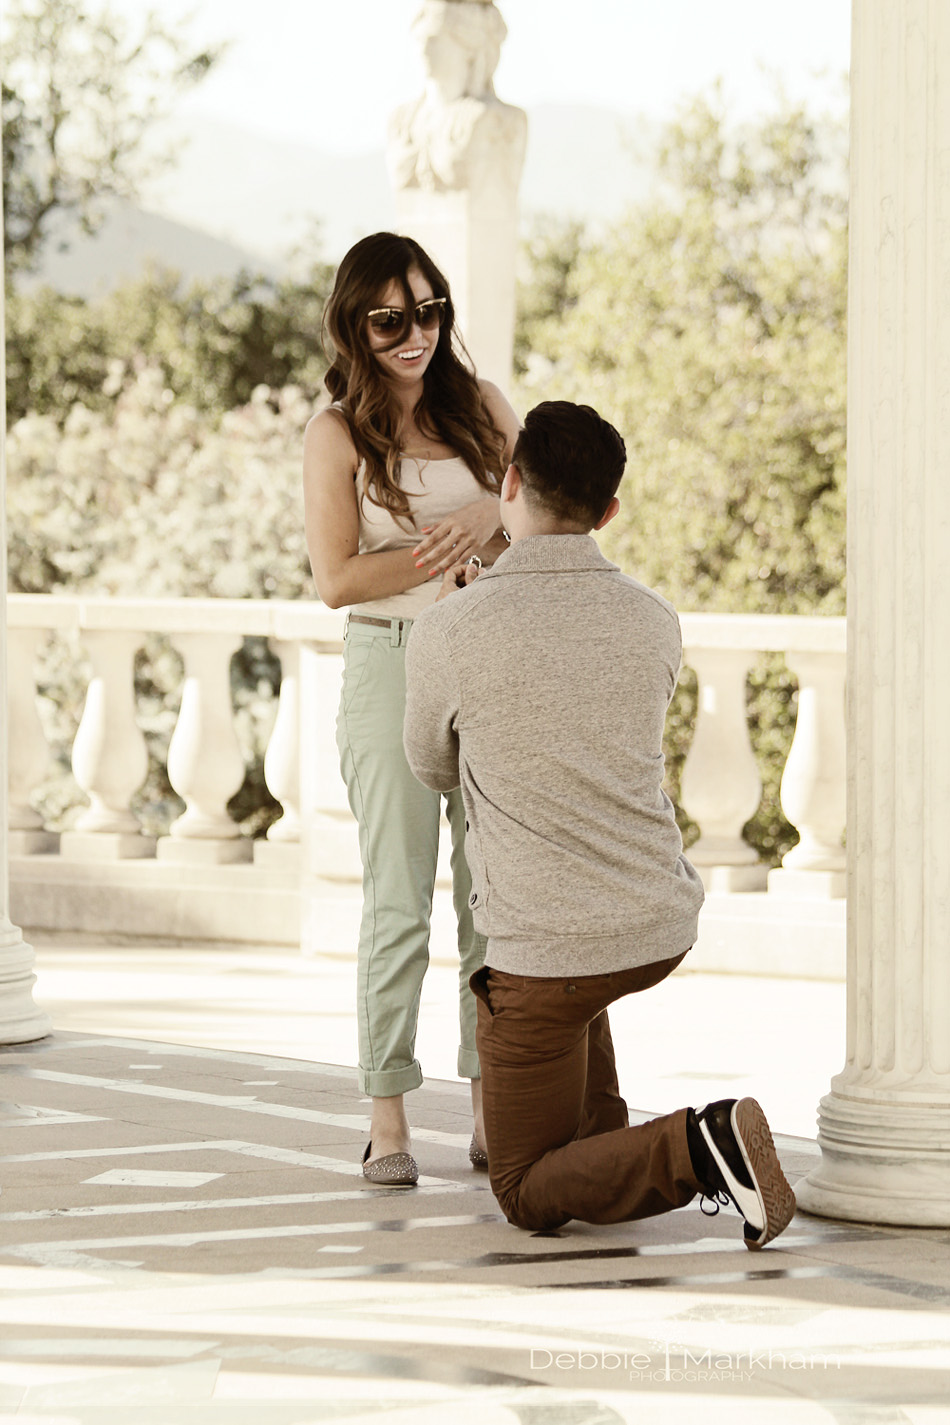 Debbie Markham Cambria Photographer-Victor proposes to Alma at Hearst Castle-Engagement SessionIMG_8925